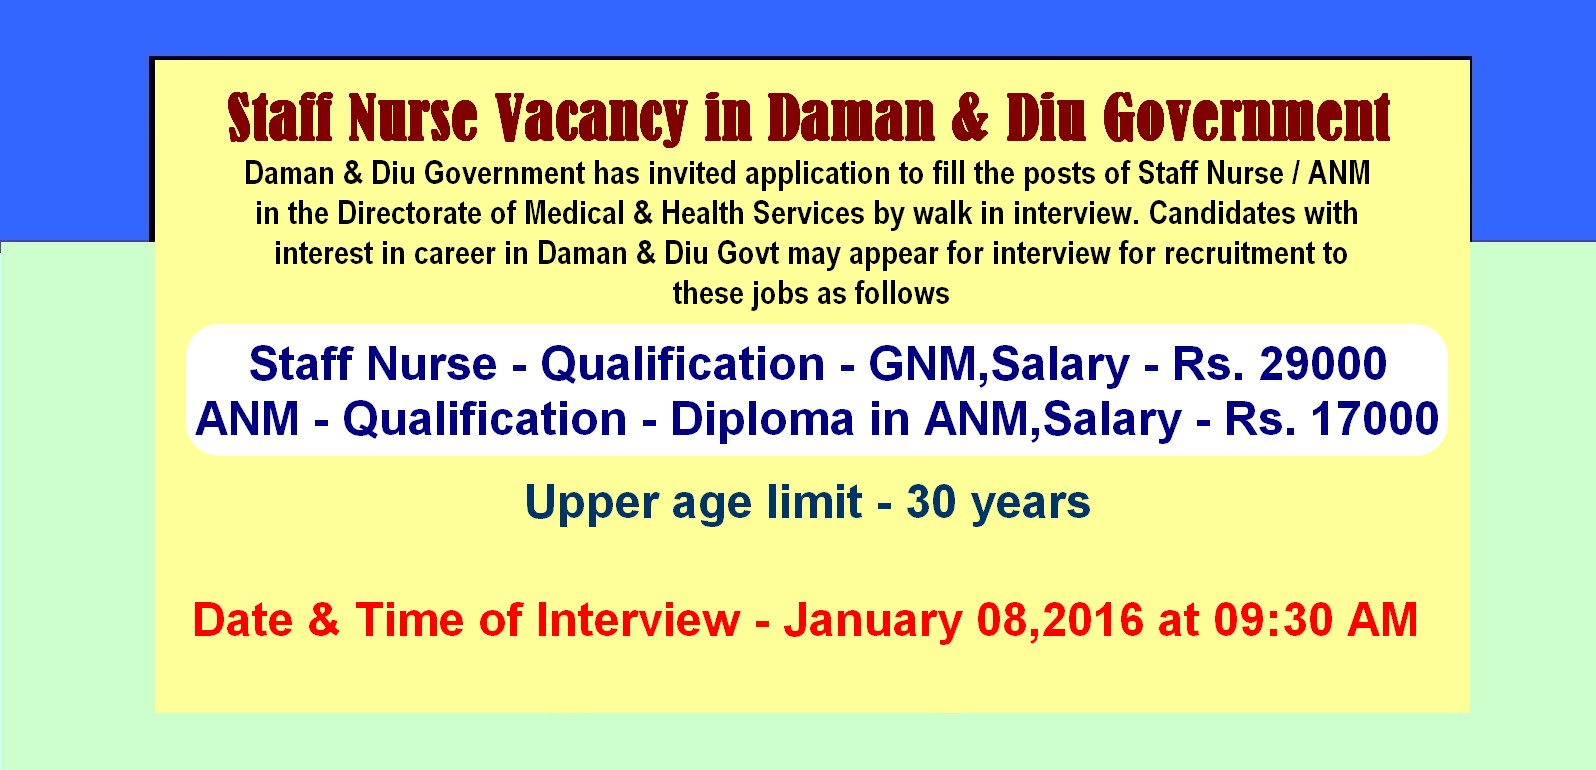 nurses job vacancy anm staff nurse vacancy in daman diu daman diu government has invited application to fill the posts of staff nurse anm in the directorate of medical health services by walk in interview